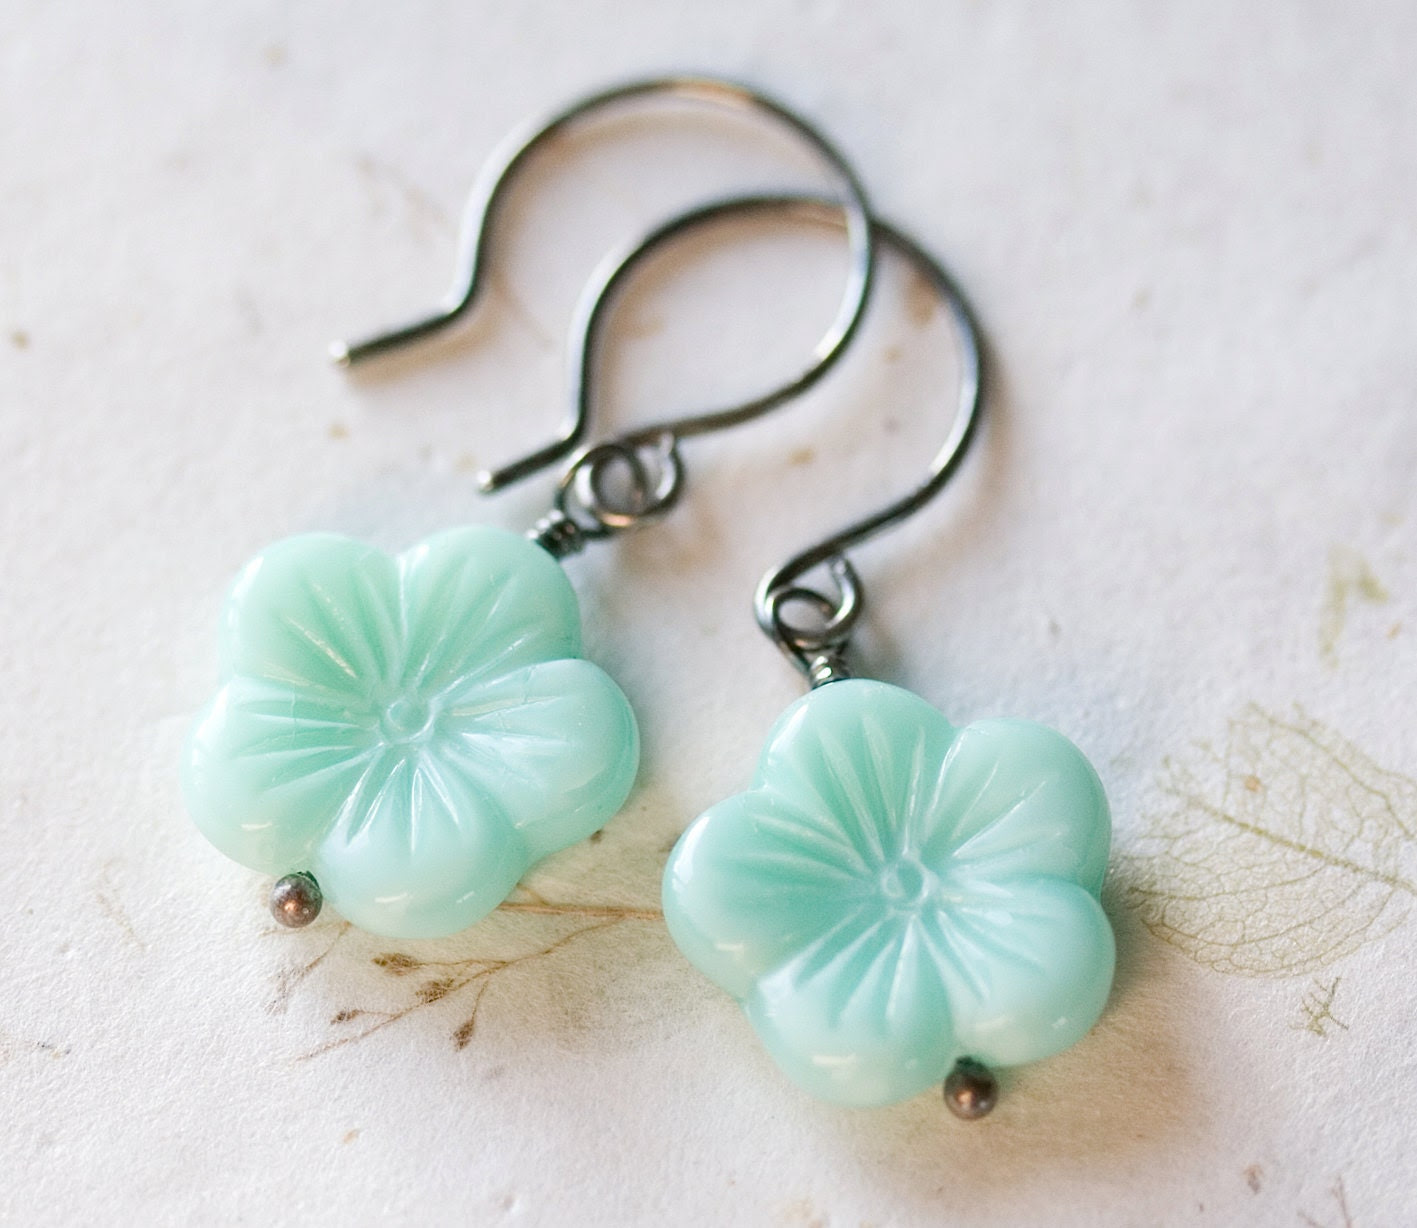 Mint Flower Earrings Sterling Silver Oxidized Czech Glass Spring Blossom Aqua Spearmint - FirebirdJewellery